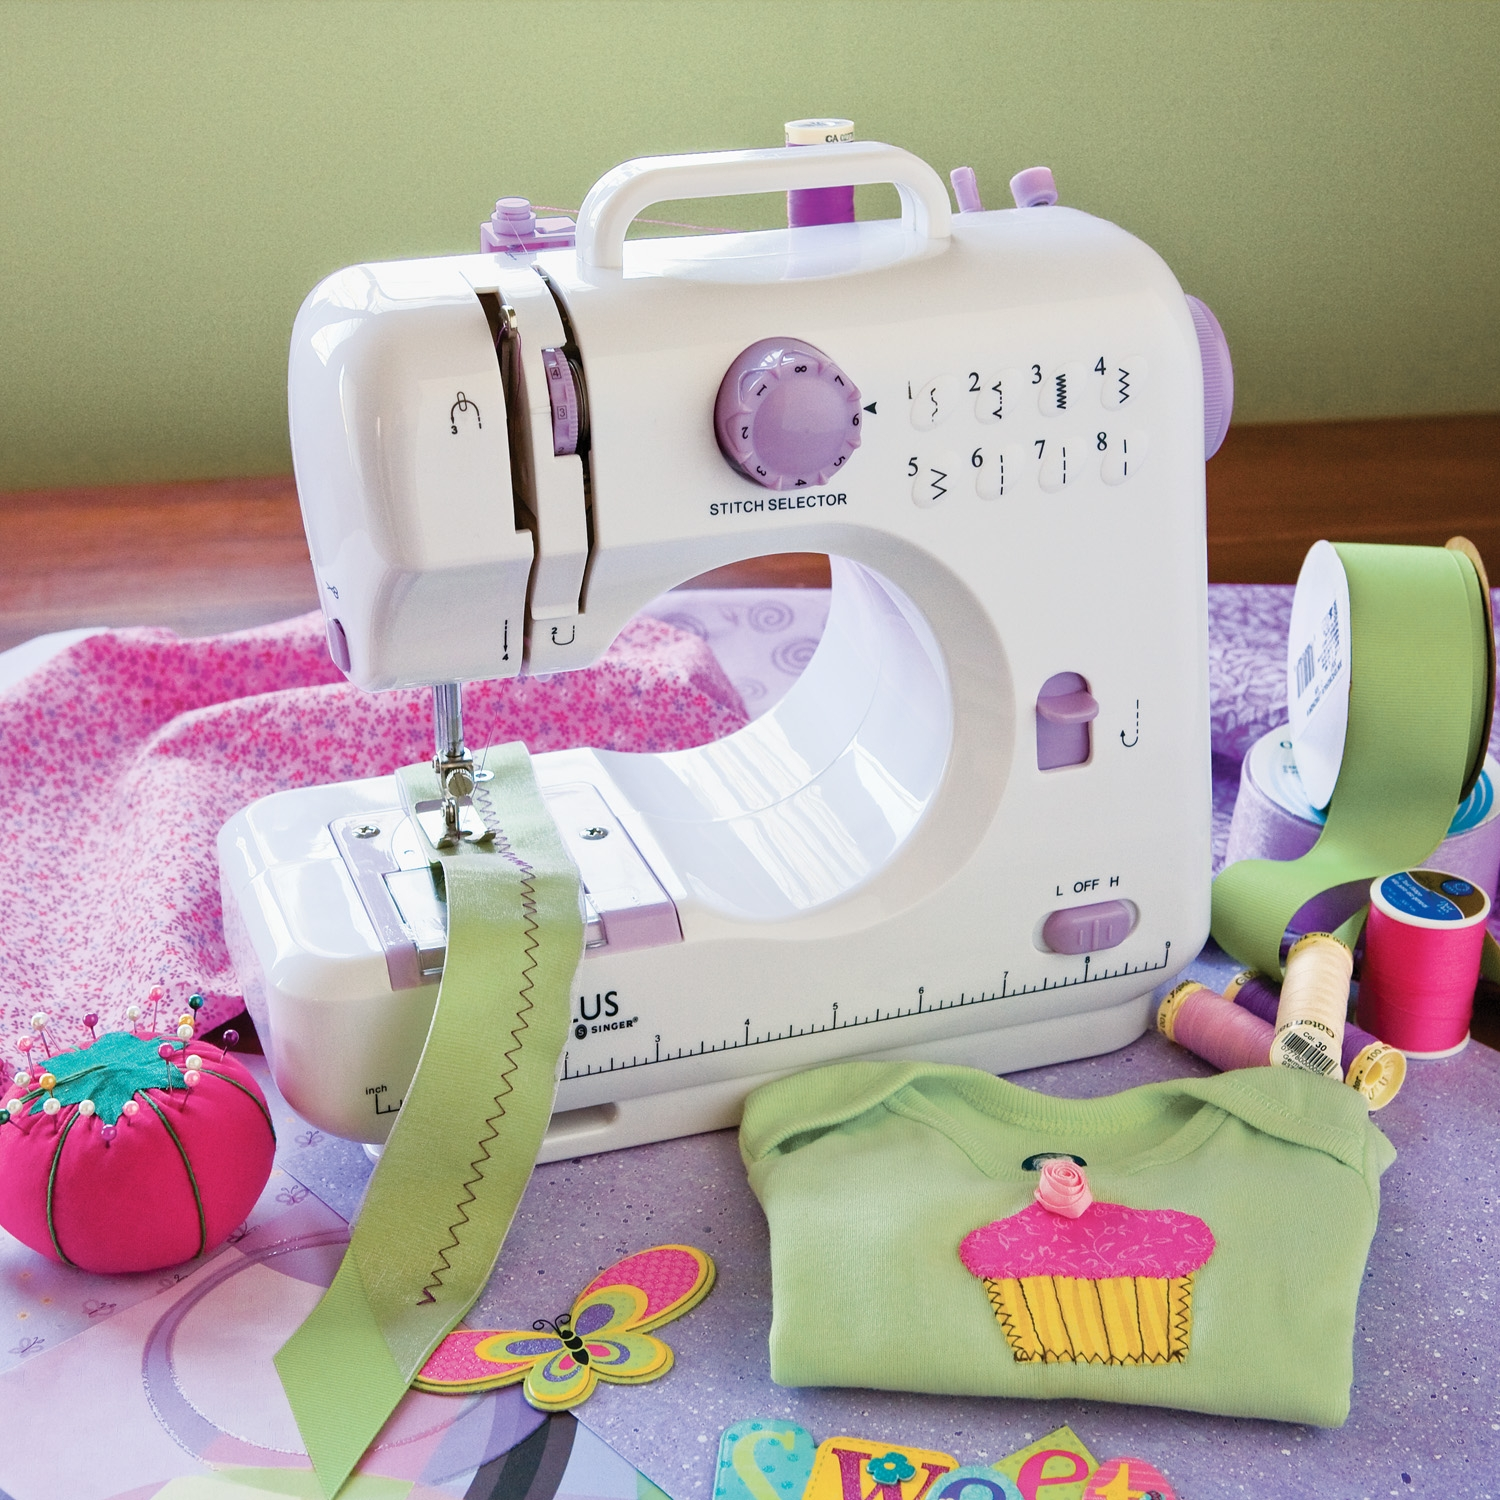 singer pixie plus craft sewing machine p WP